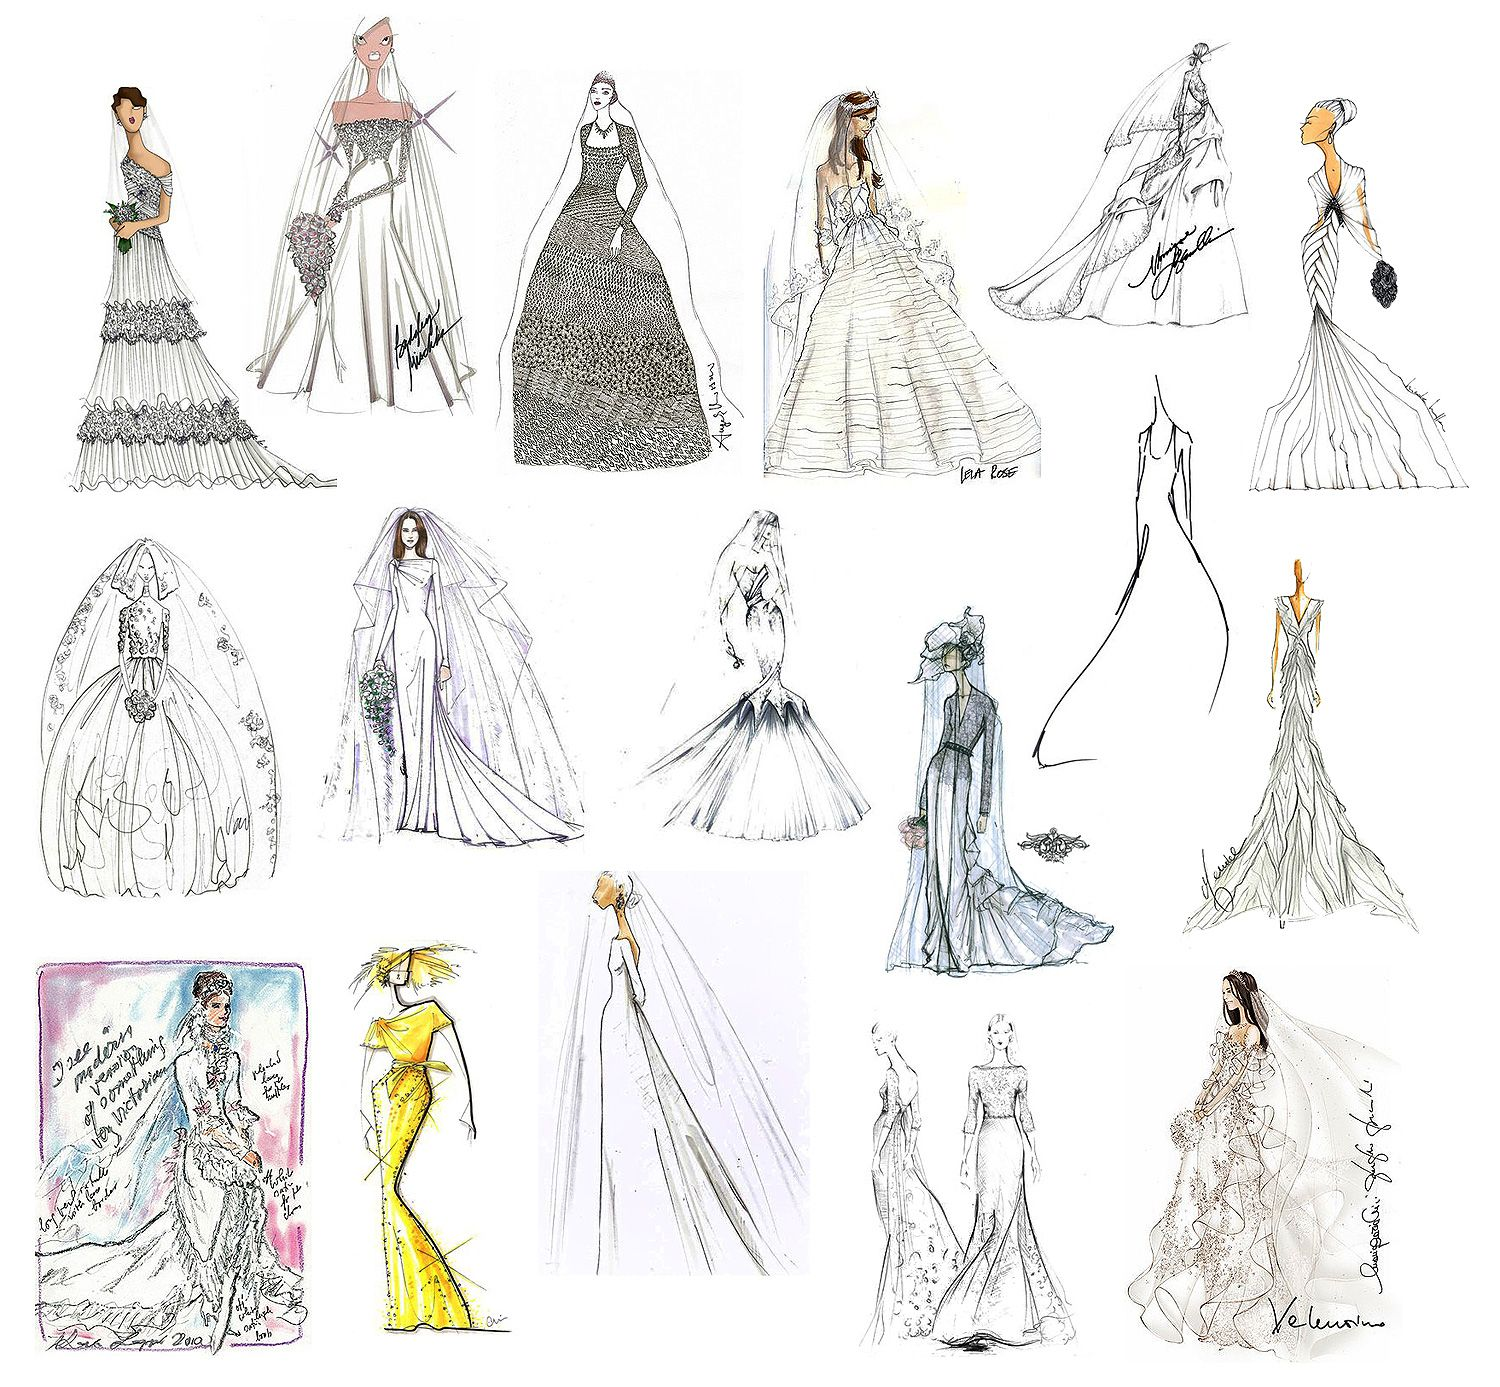 Fashion Design Inspiration Ideas Lady Gaga Style Some Fashion Design Ideas As A Part Of My Interest Fashion Design Ideas Dress Fashion Illustration Fashion Design Course Banner La Mode College Fashion Design